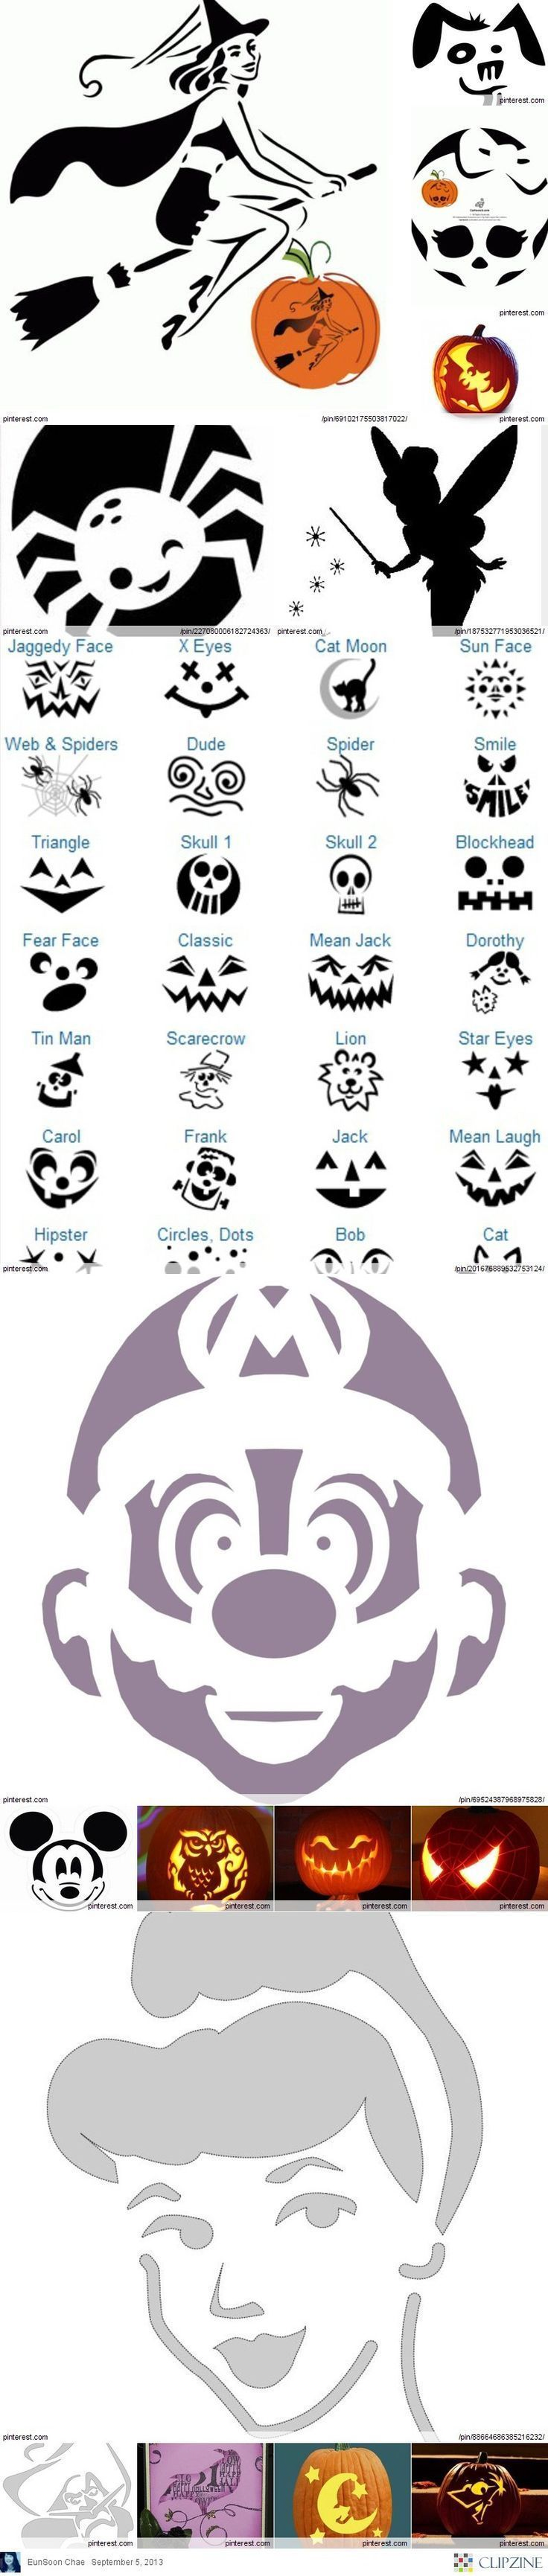 700 FREE pumpkin carving patterns with plenty of tutorials and ideas easy enough for kids. It's that time of year again!